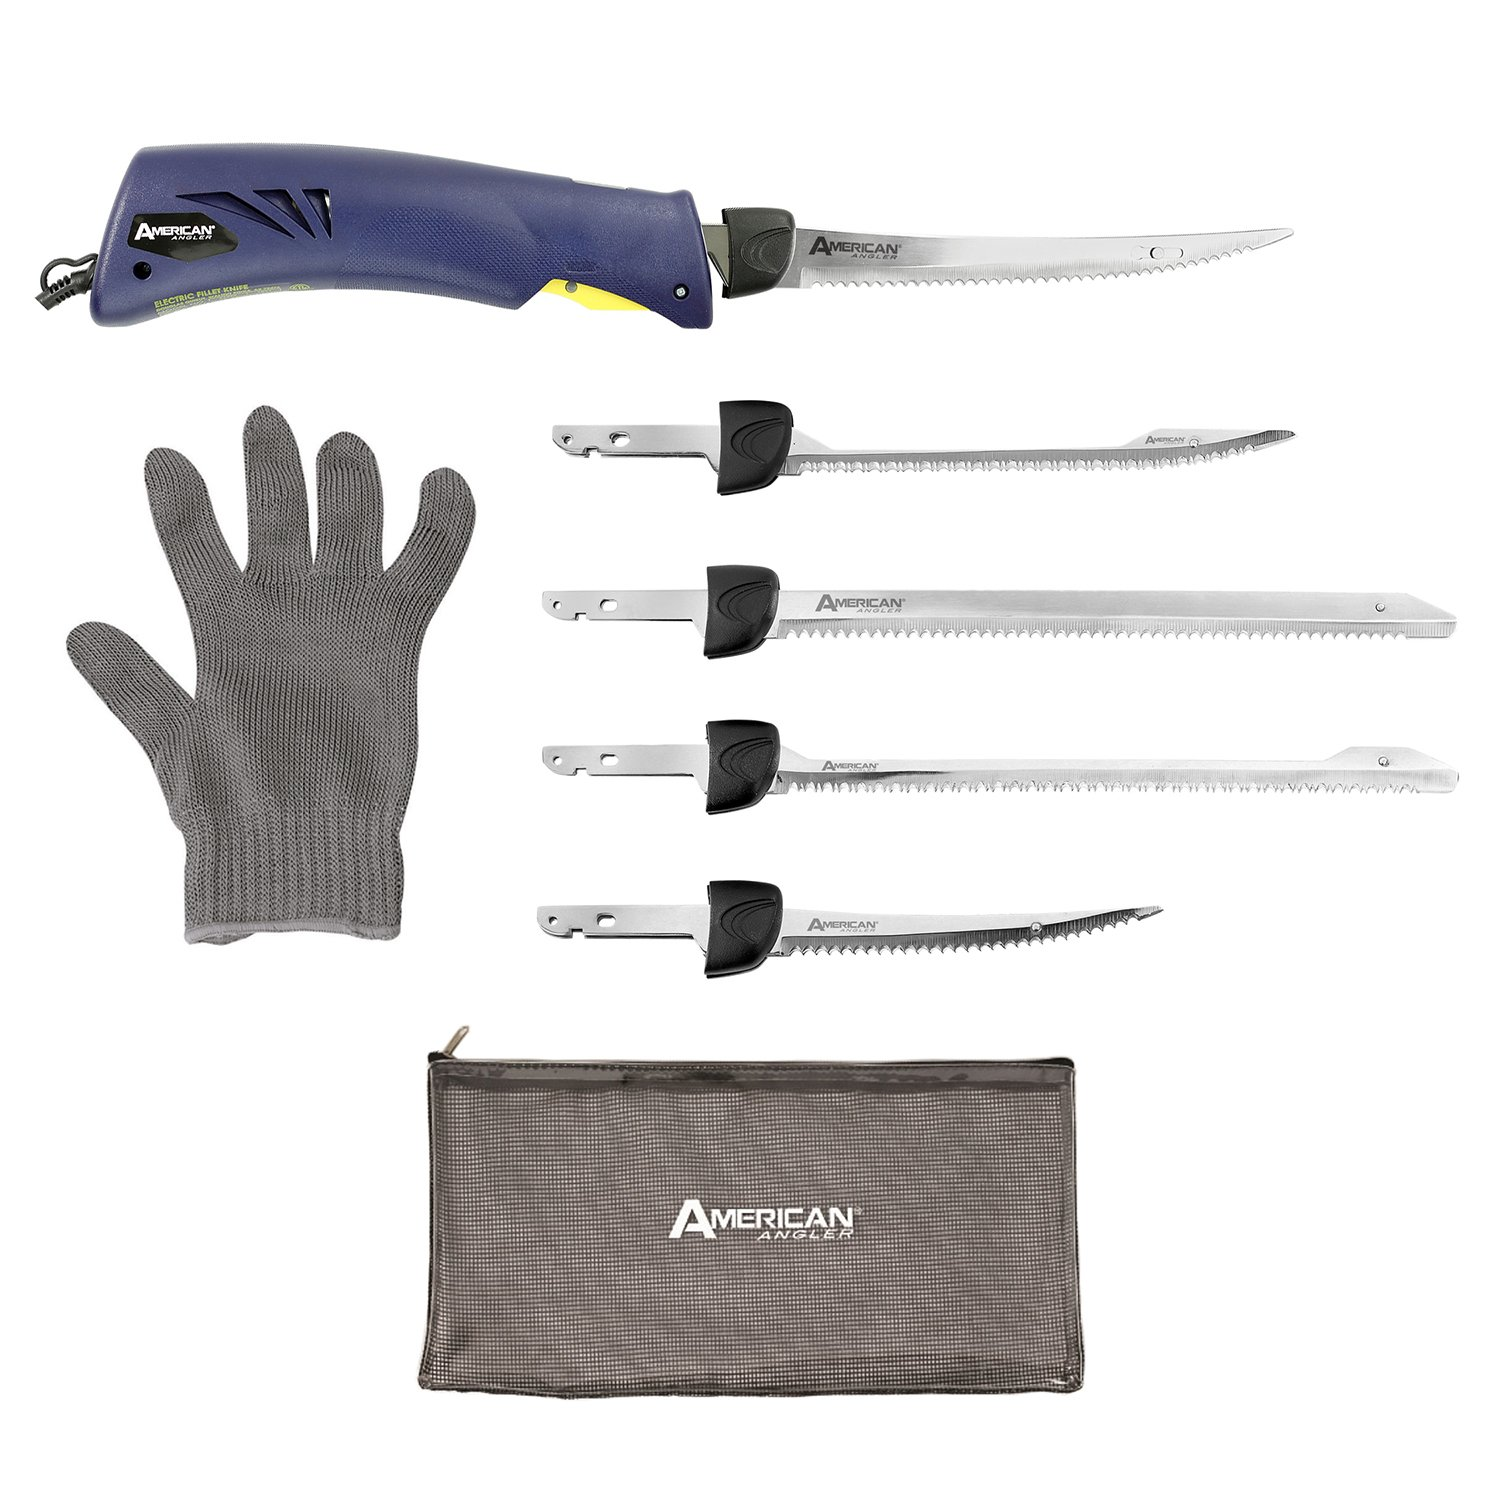 American Angler Classic Heavy Duty Electric Fillet Knife Precision Kit – 110 Volt High Performance Motorized Handset with with Five Kinds of Stainless Steel Blades, 31452DS by American Angler